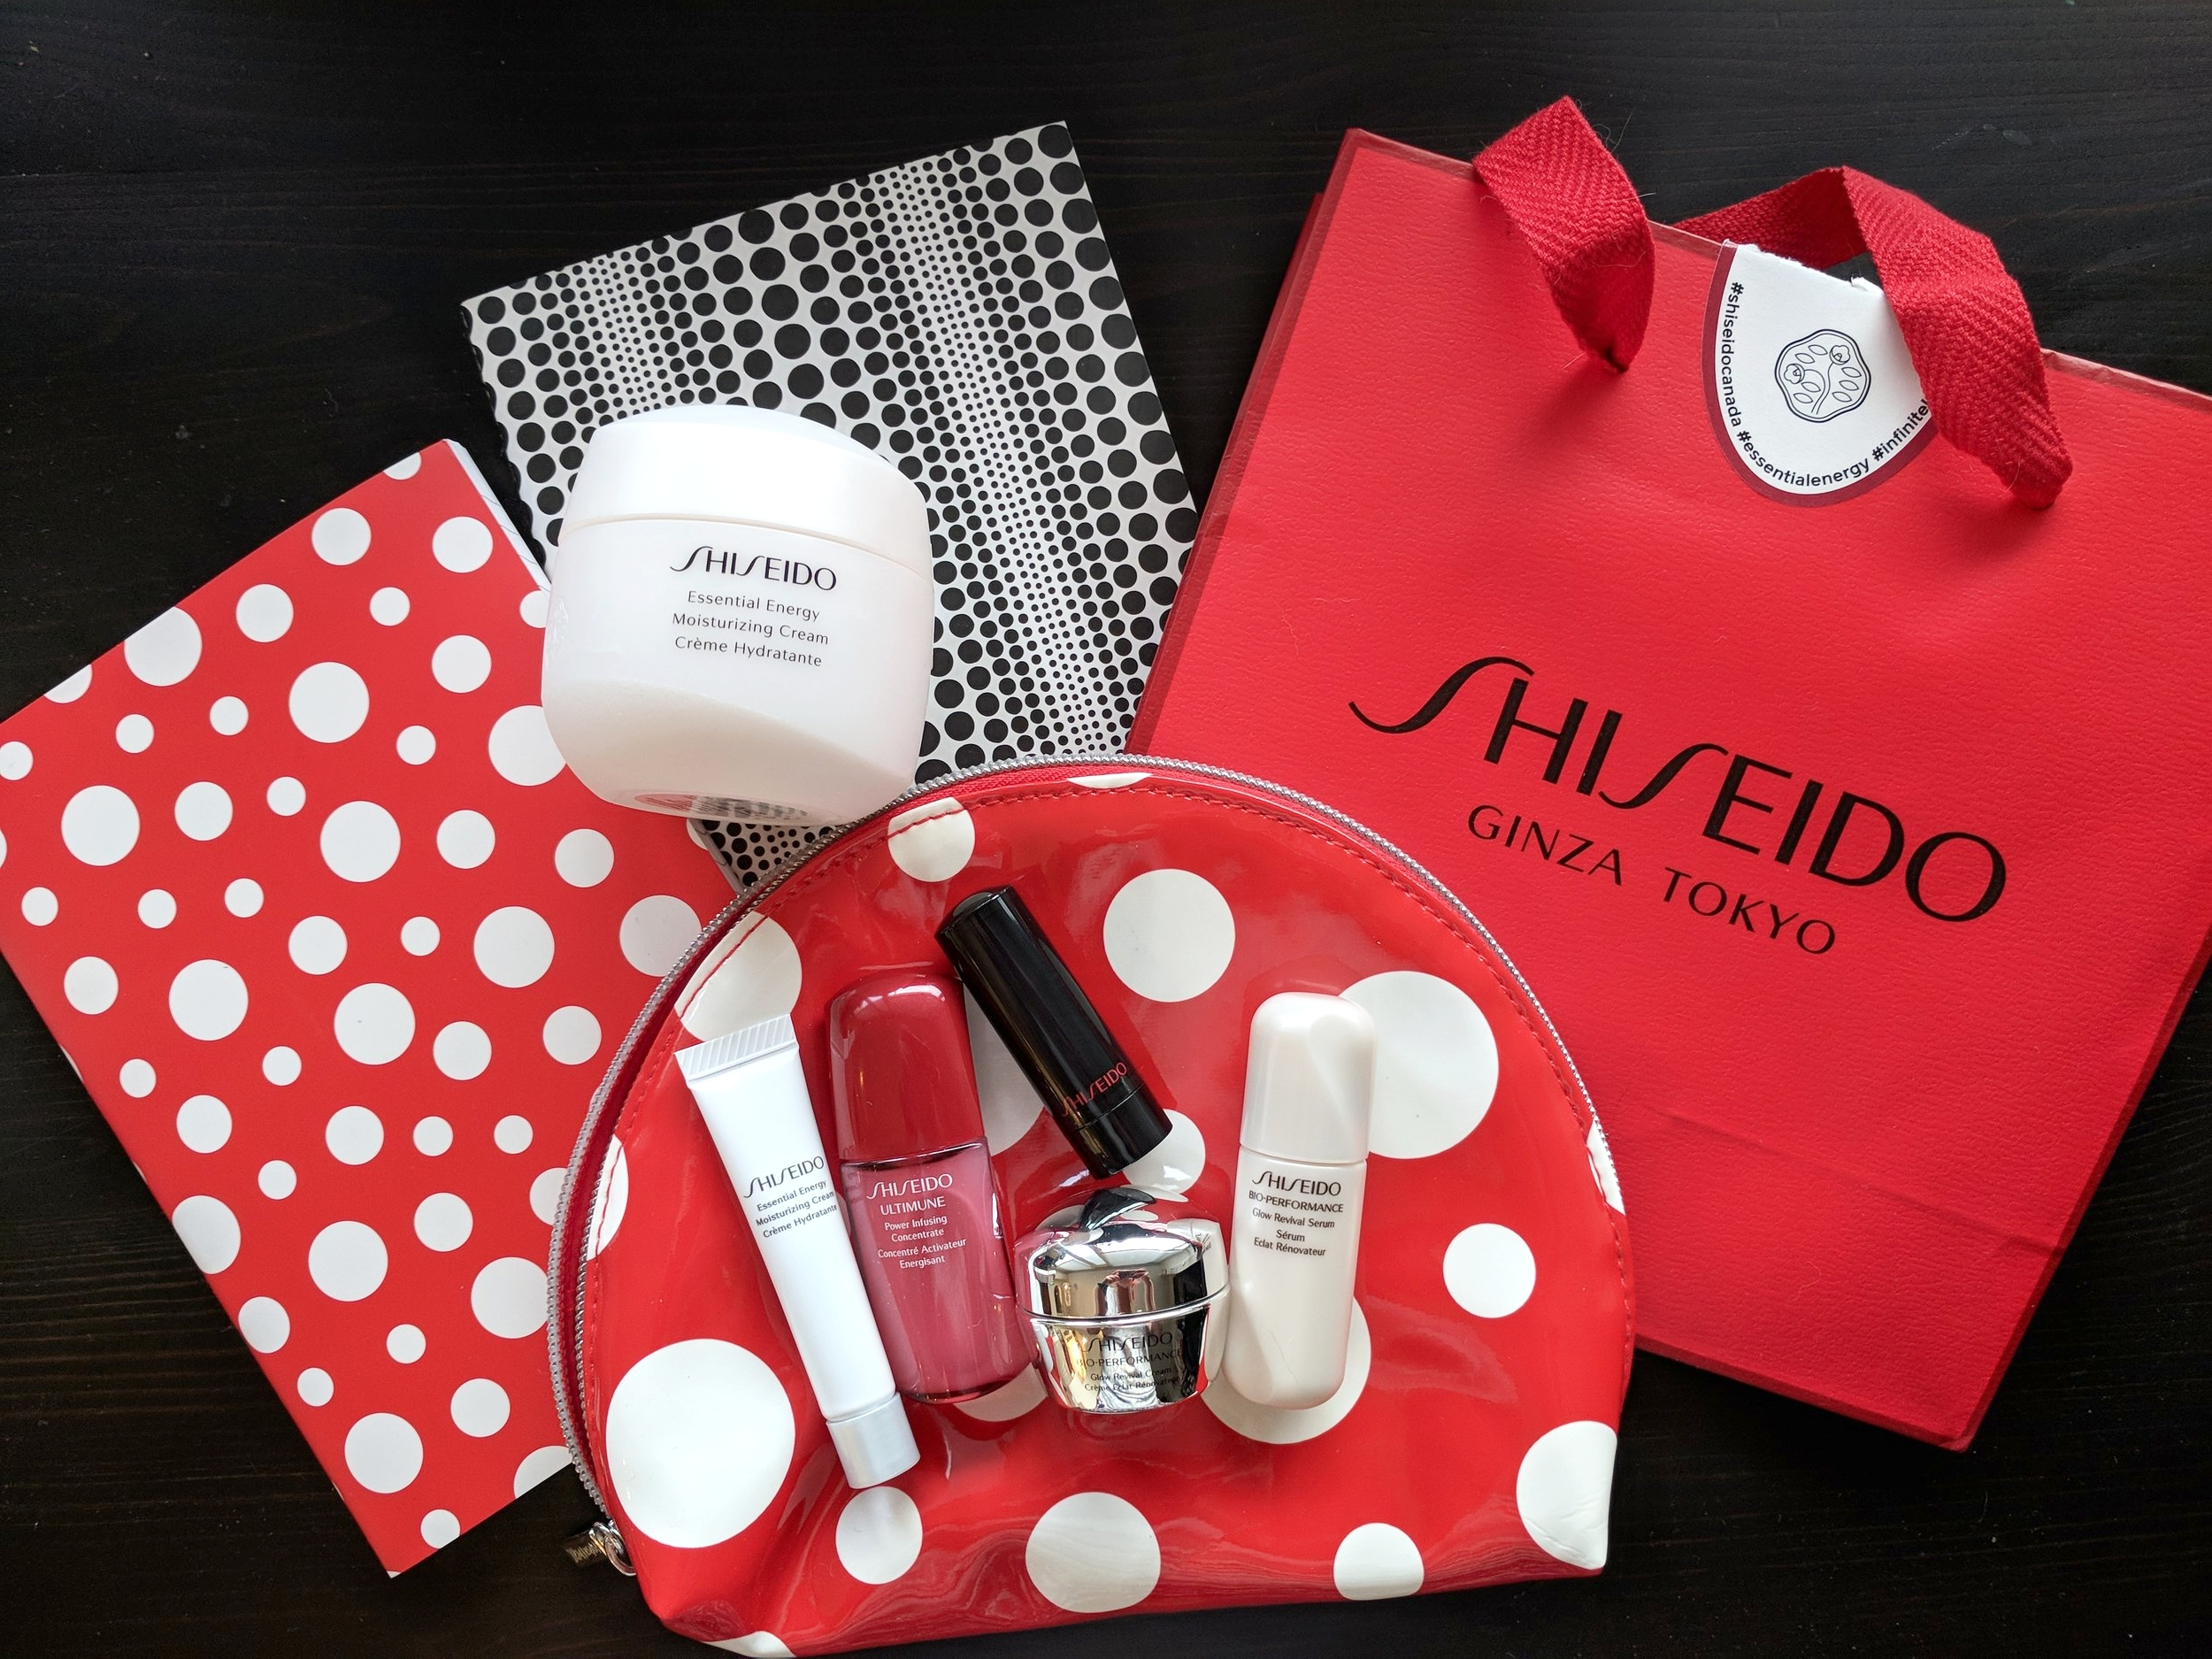 Shiseido Essential Energy Six-Piece Set Gift With Purchase